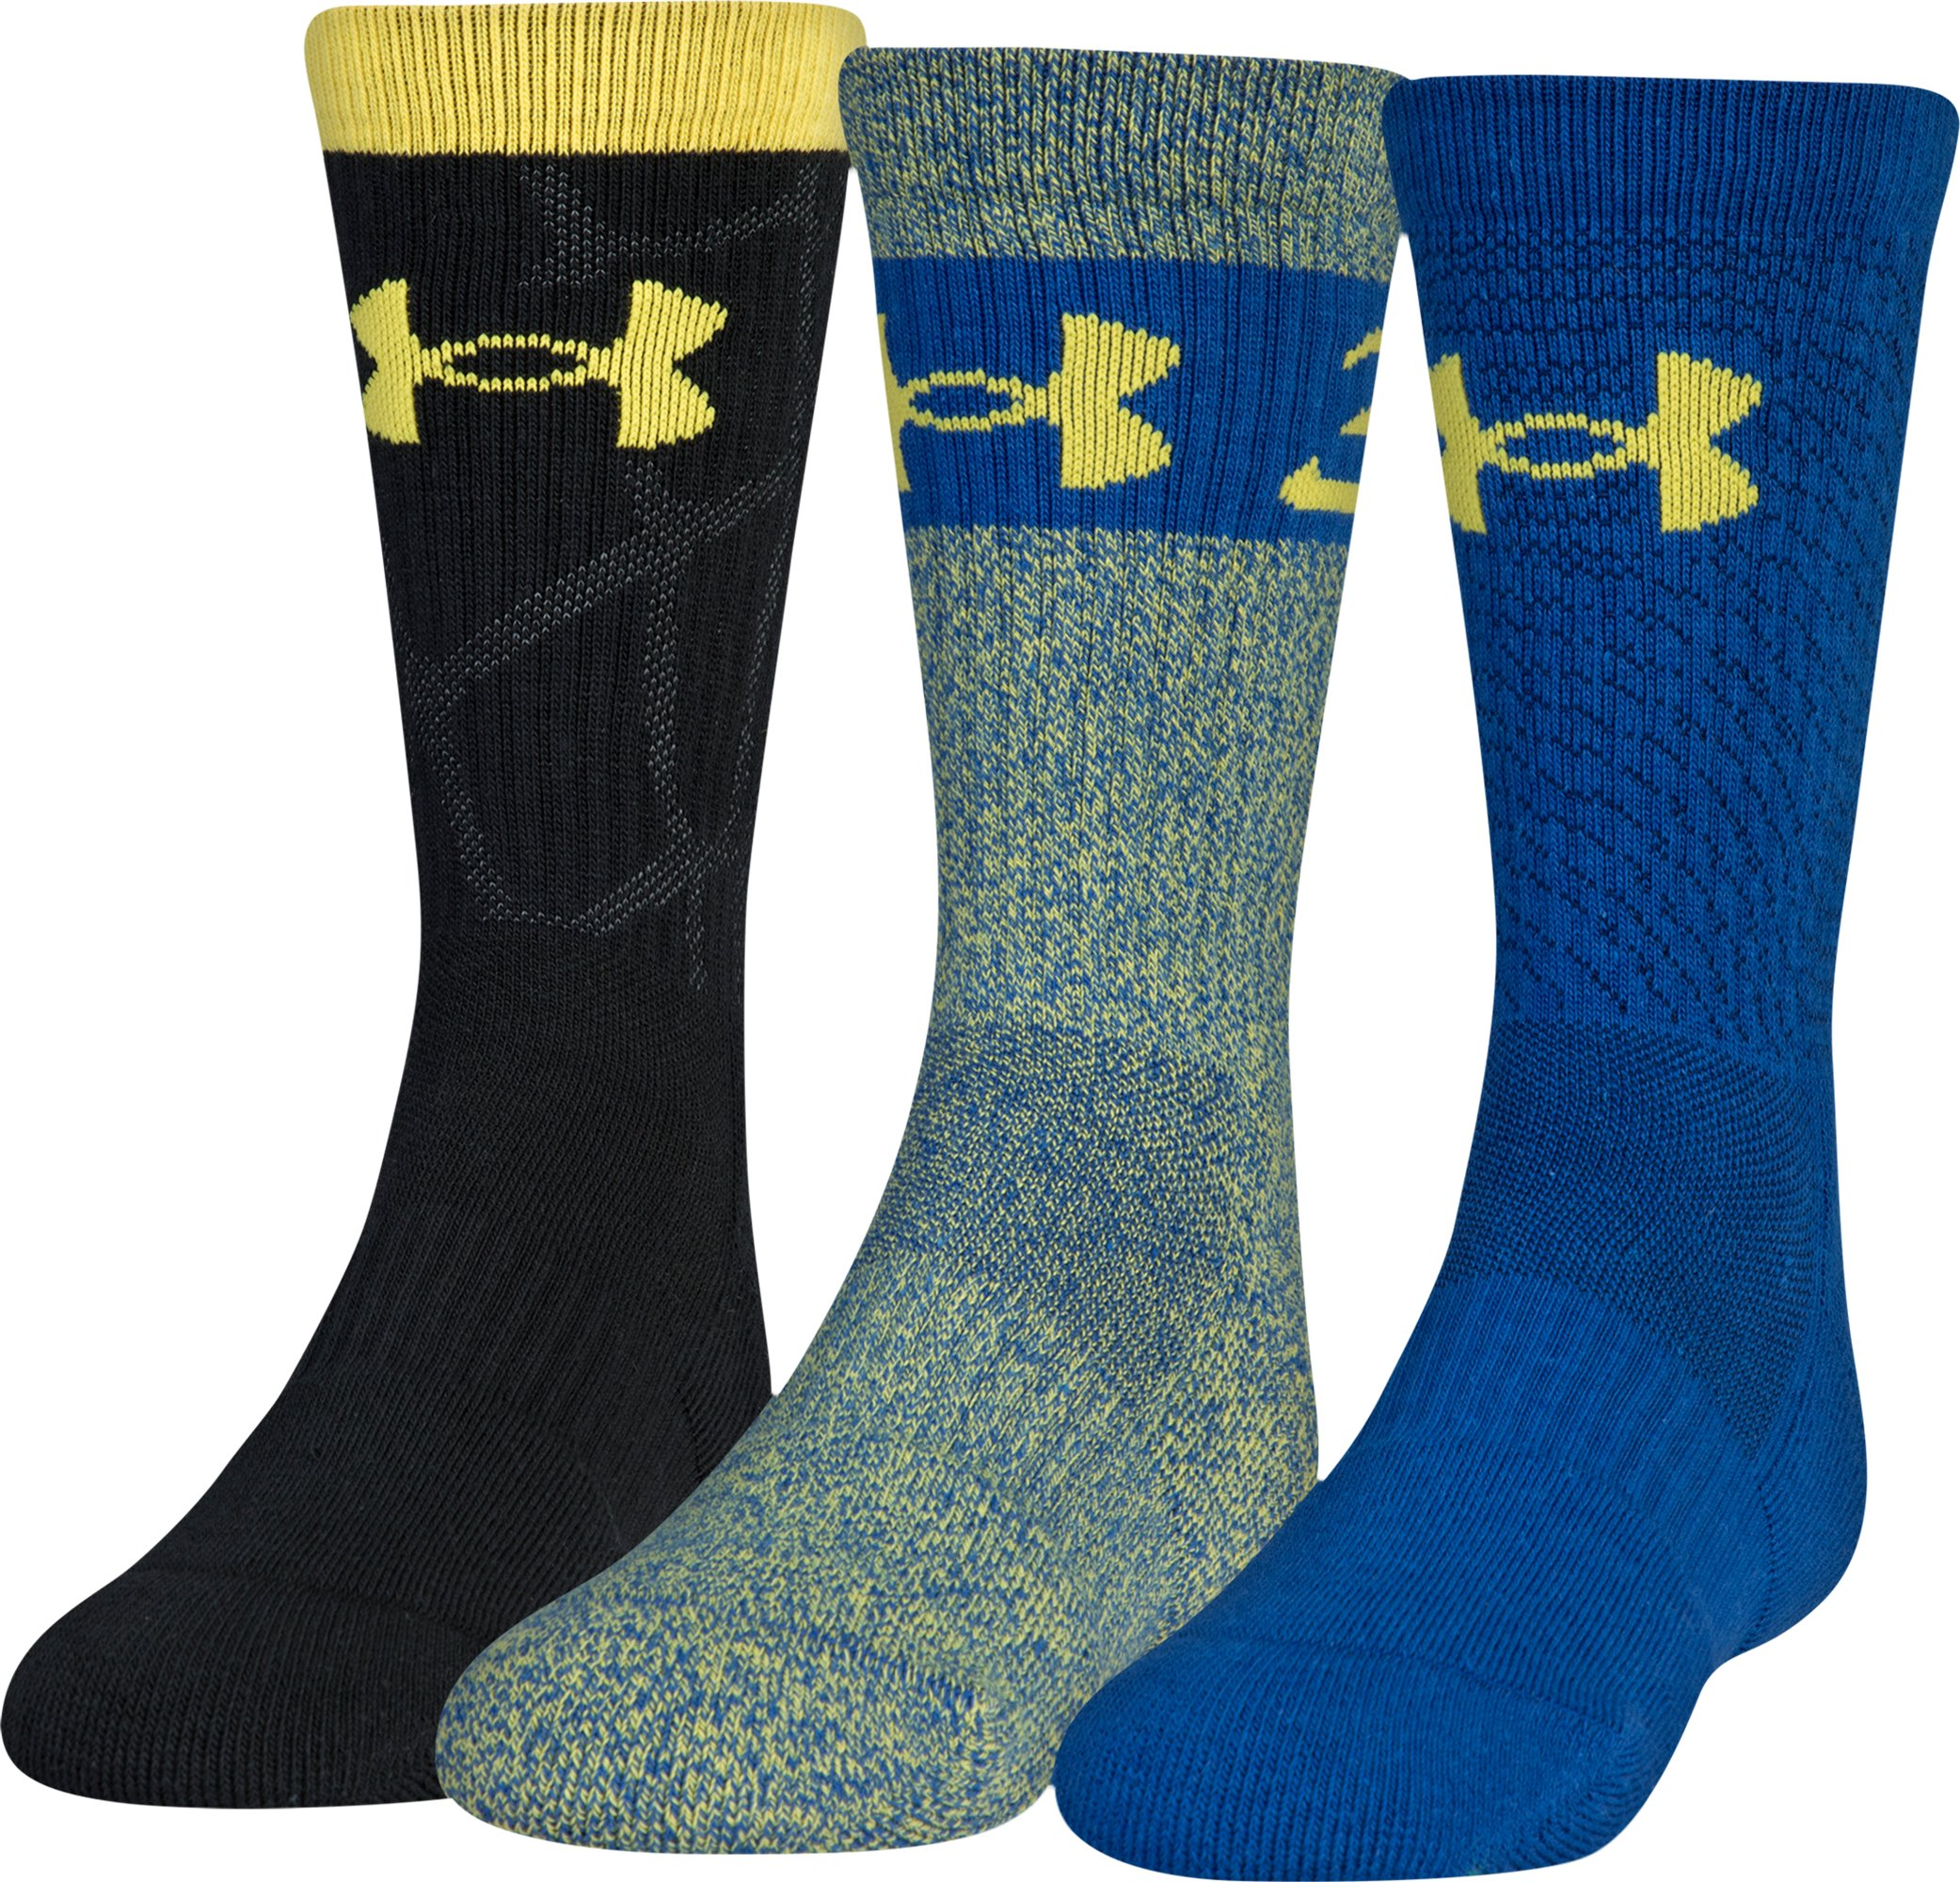 Boys SC30 Phenom 2.0 Crew Socks 3-Pack, Taxi, zoomed